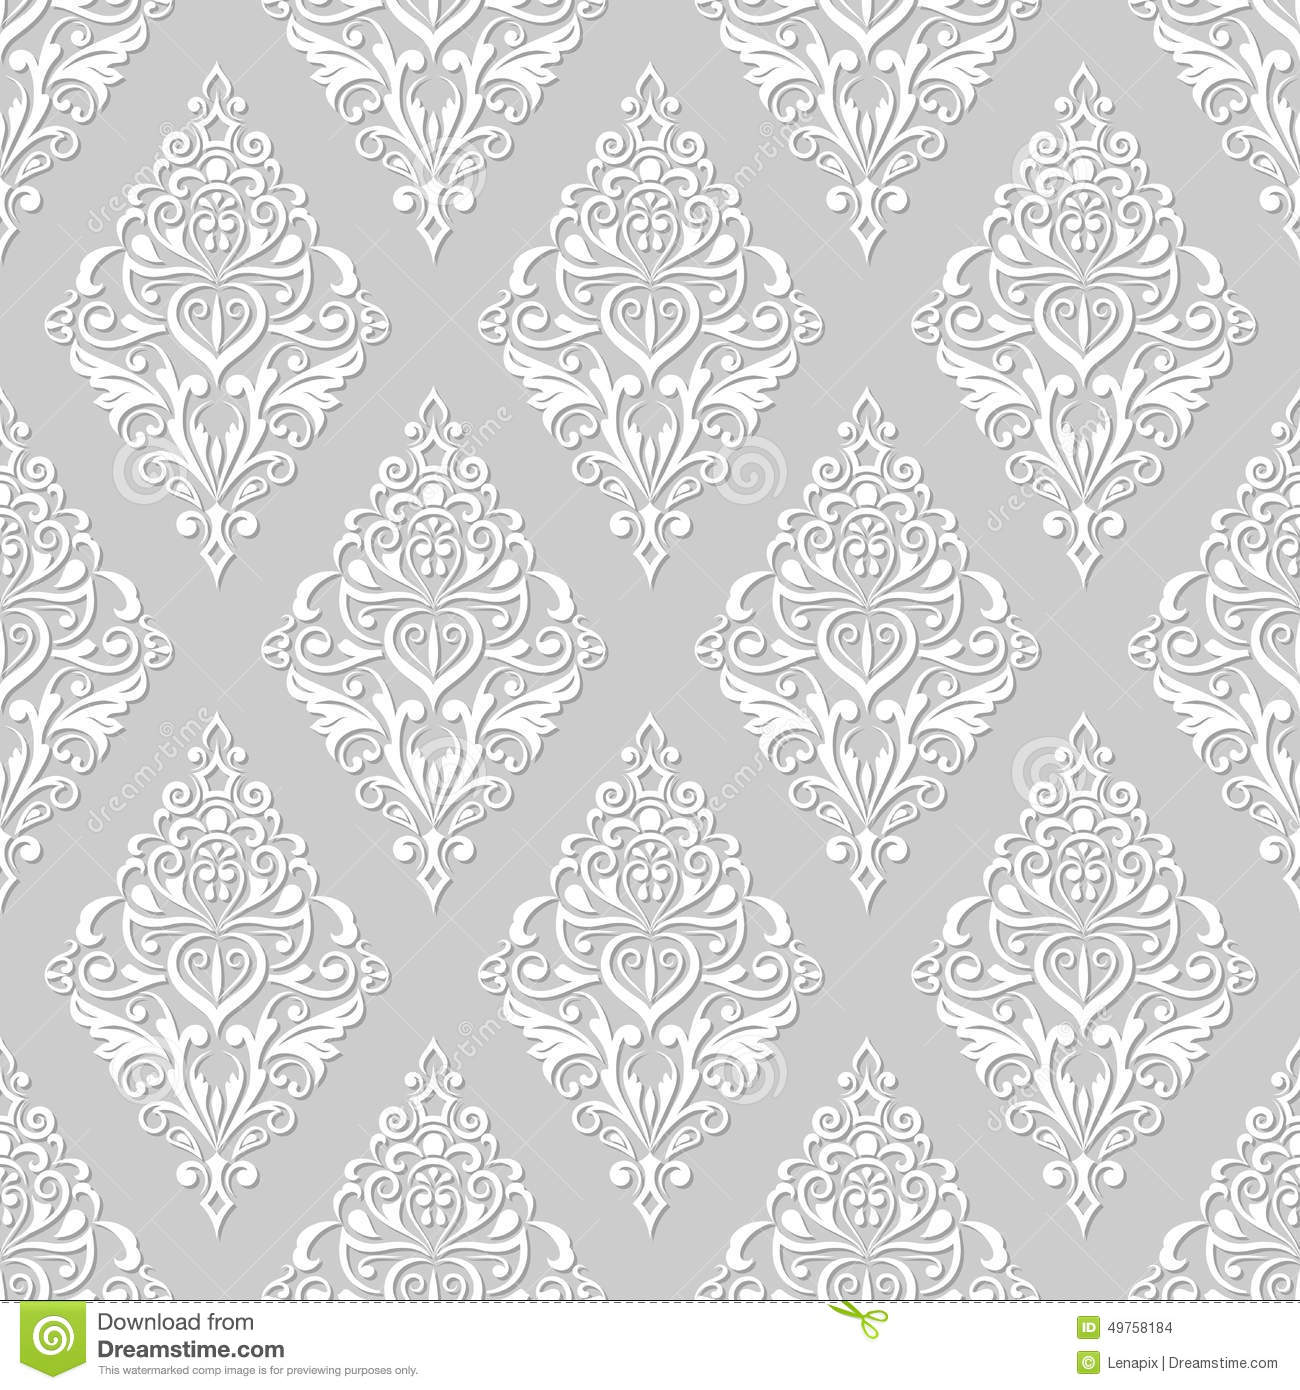 Grey And White Pattern White And Grey Floral Wallpaper Stock Vector Image 49758184